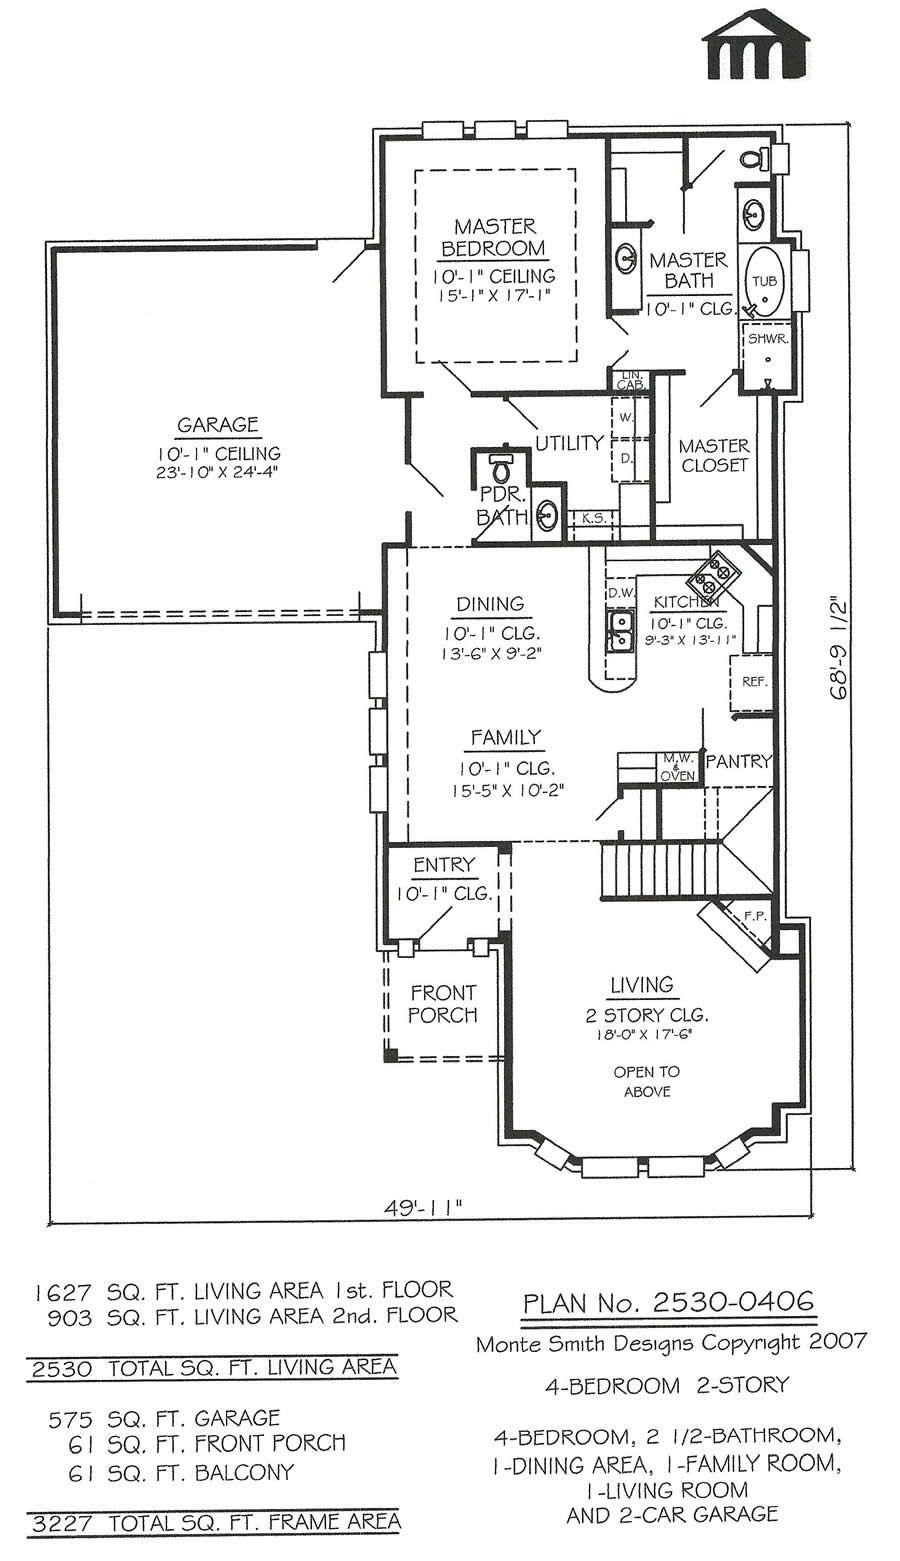 medium resolution of 2 story 4 bedroom 2 1 2 bathroom 1 dining room 1 family room 1 living room and 2 car garage 2530 sq living area house plan offices in texas and